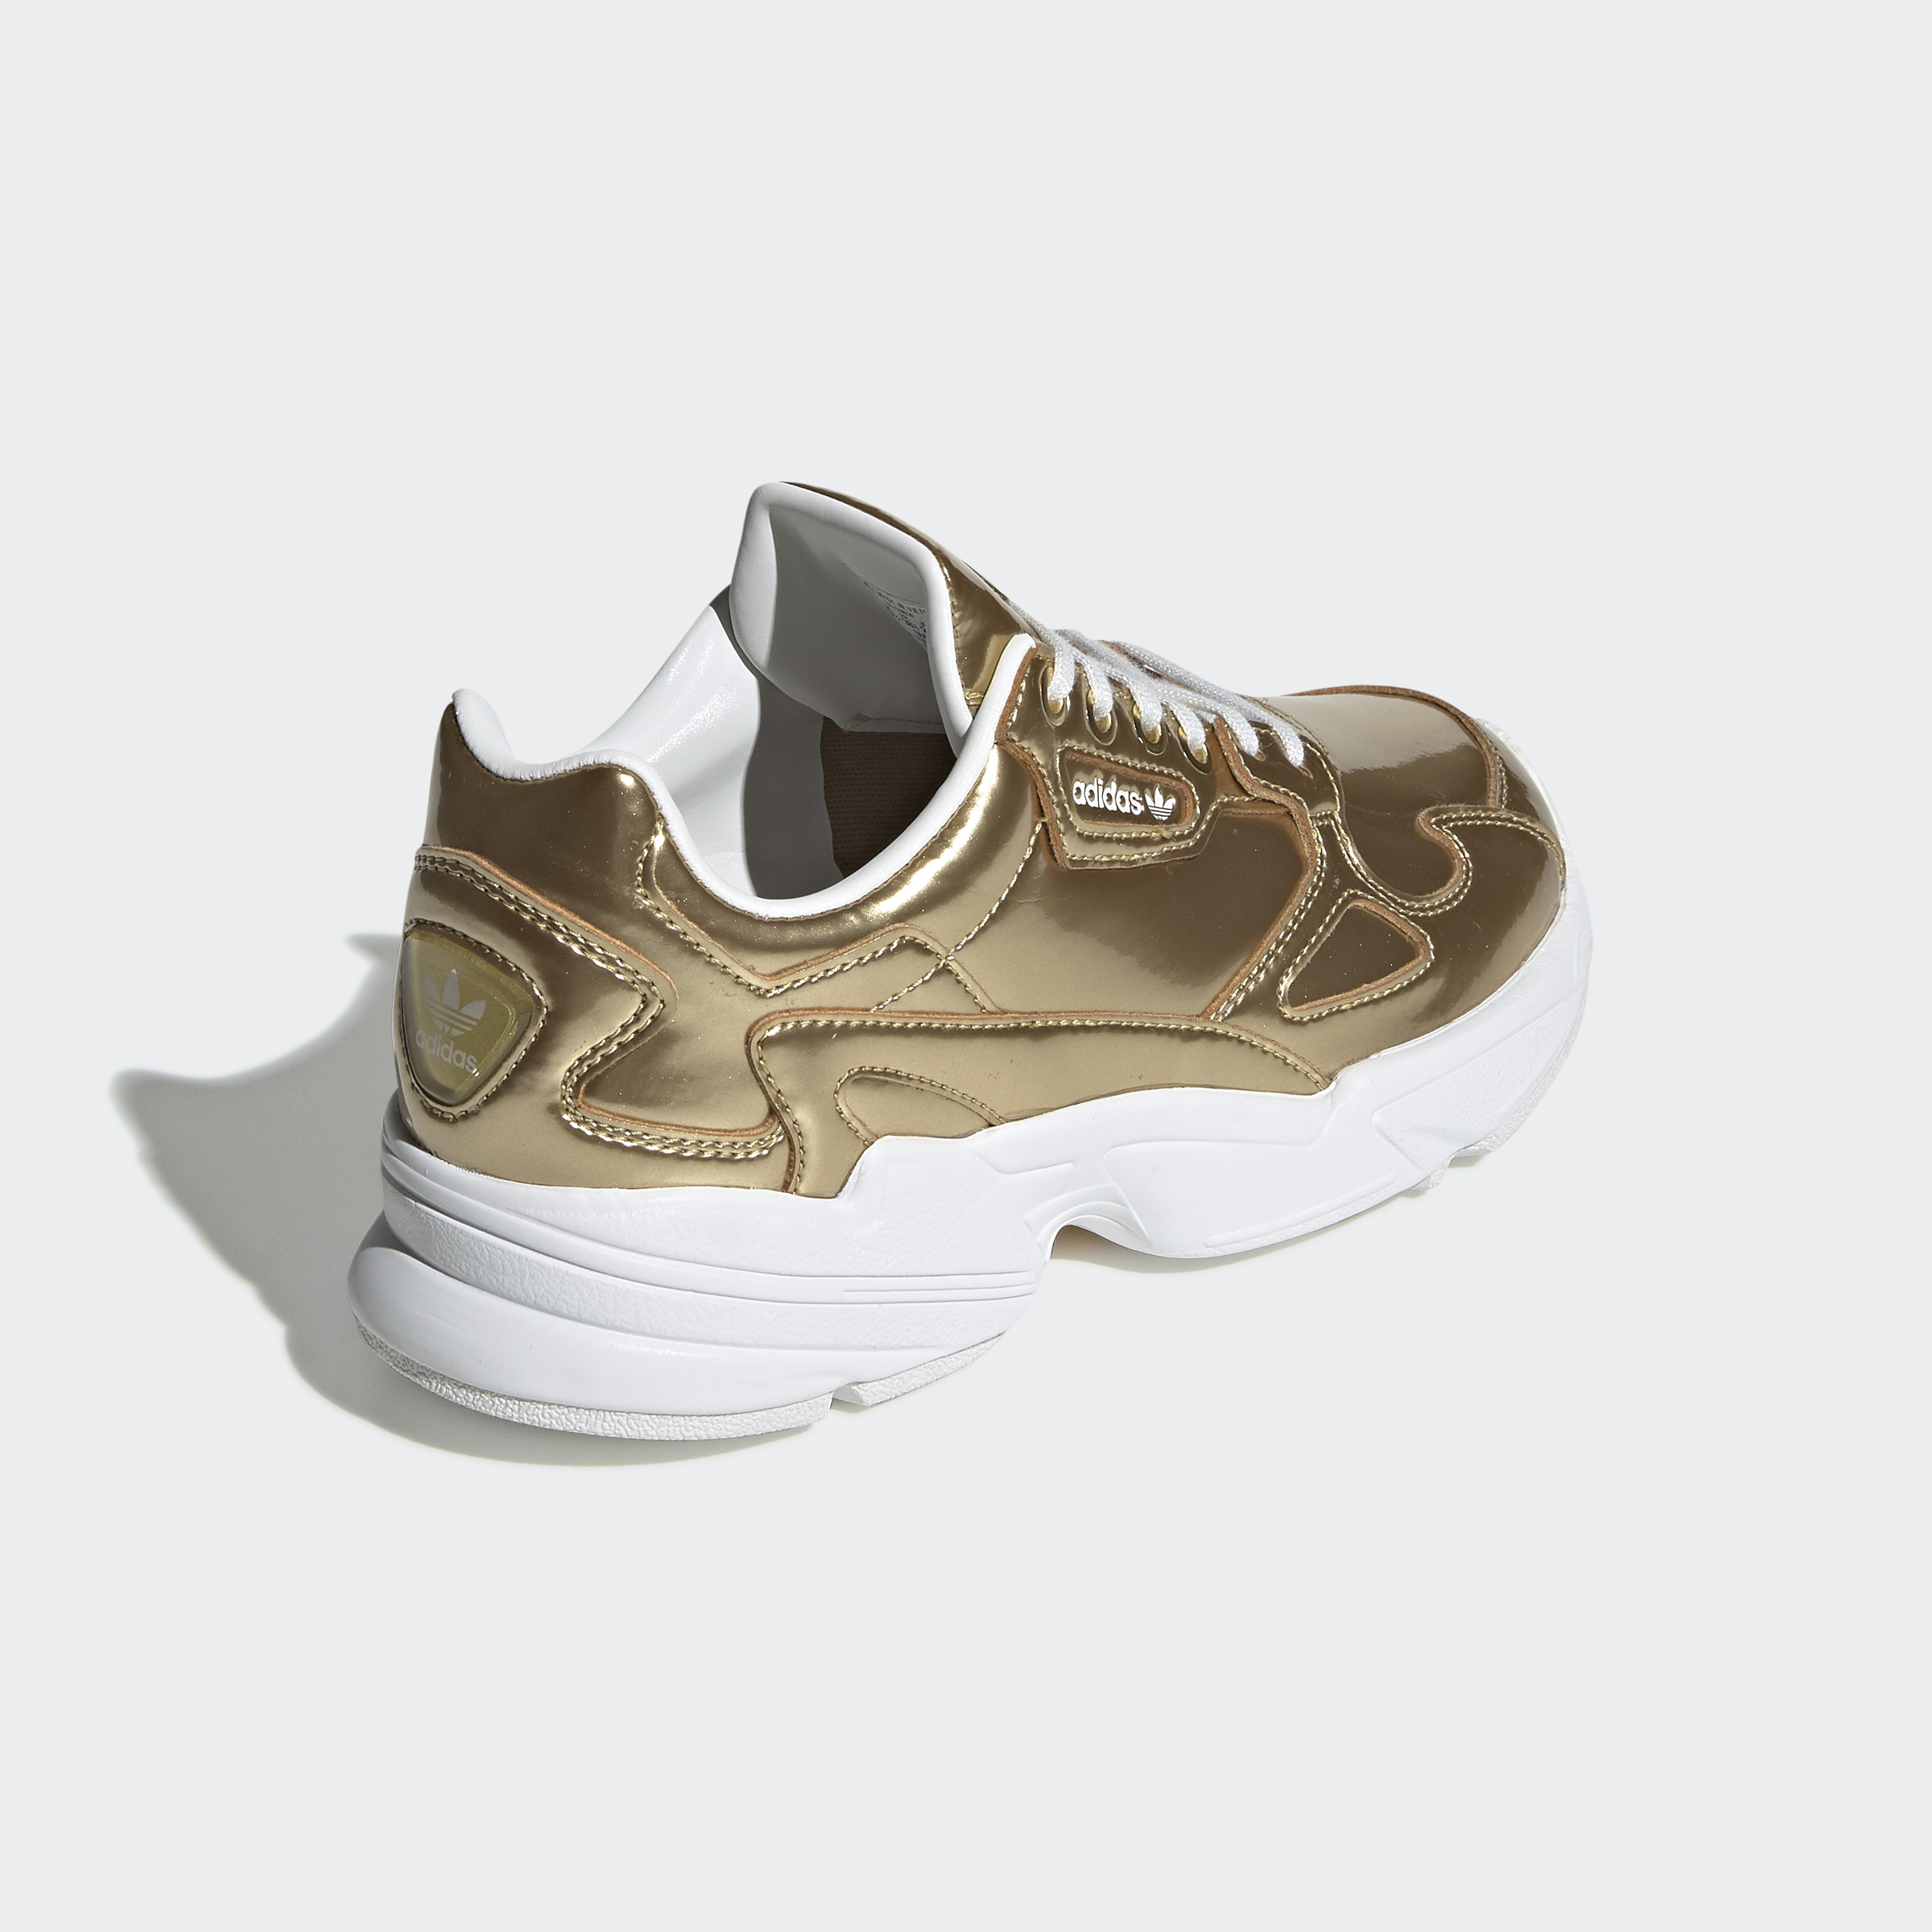 adidas-Falcon-Shoes-Women-039-s-Athletic-amp-Sneakers thumbnail 11